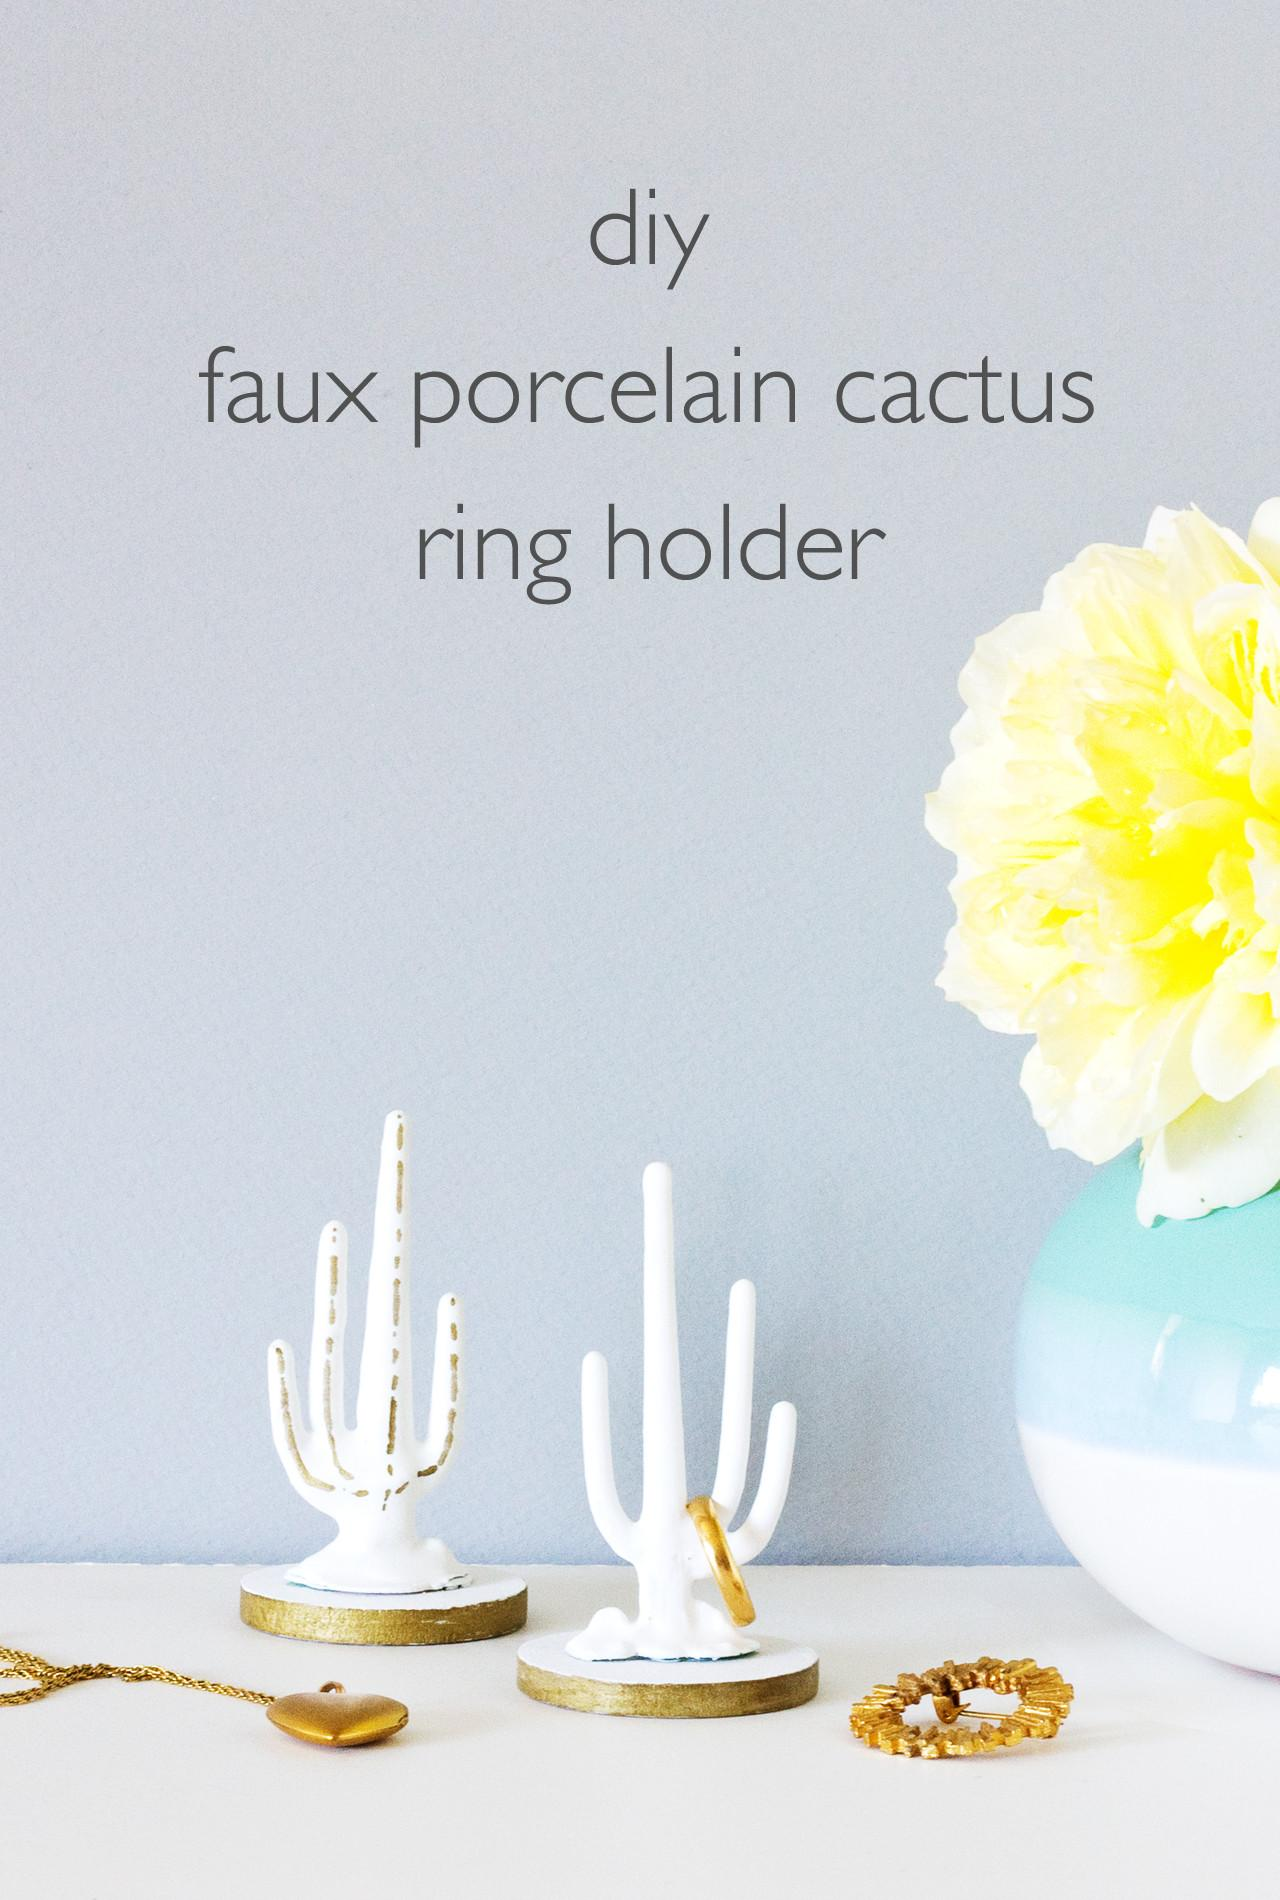 Vitamini Handmade Diy Faux Porcelain Cactus Ring Holder